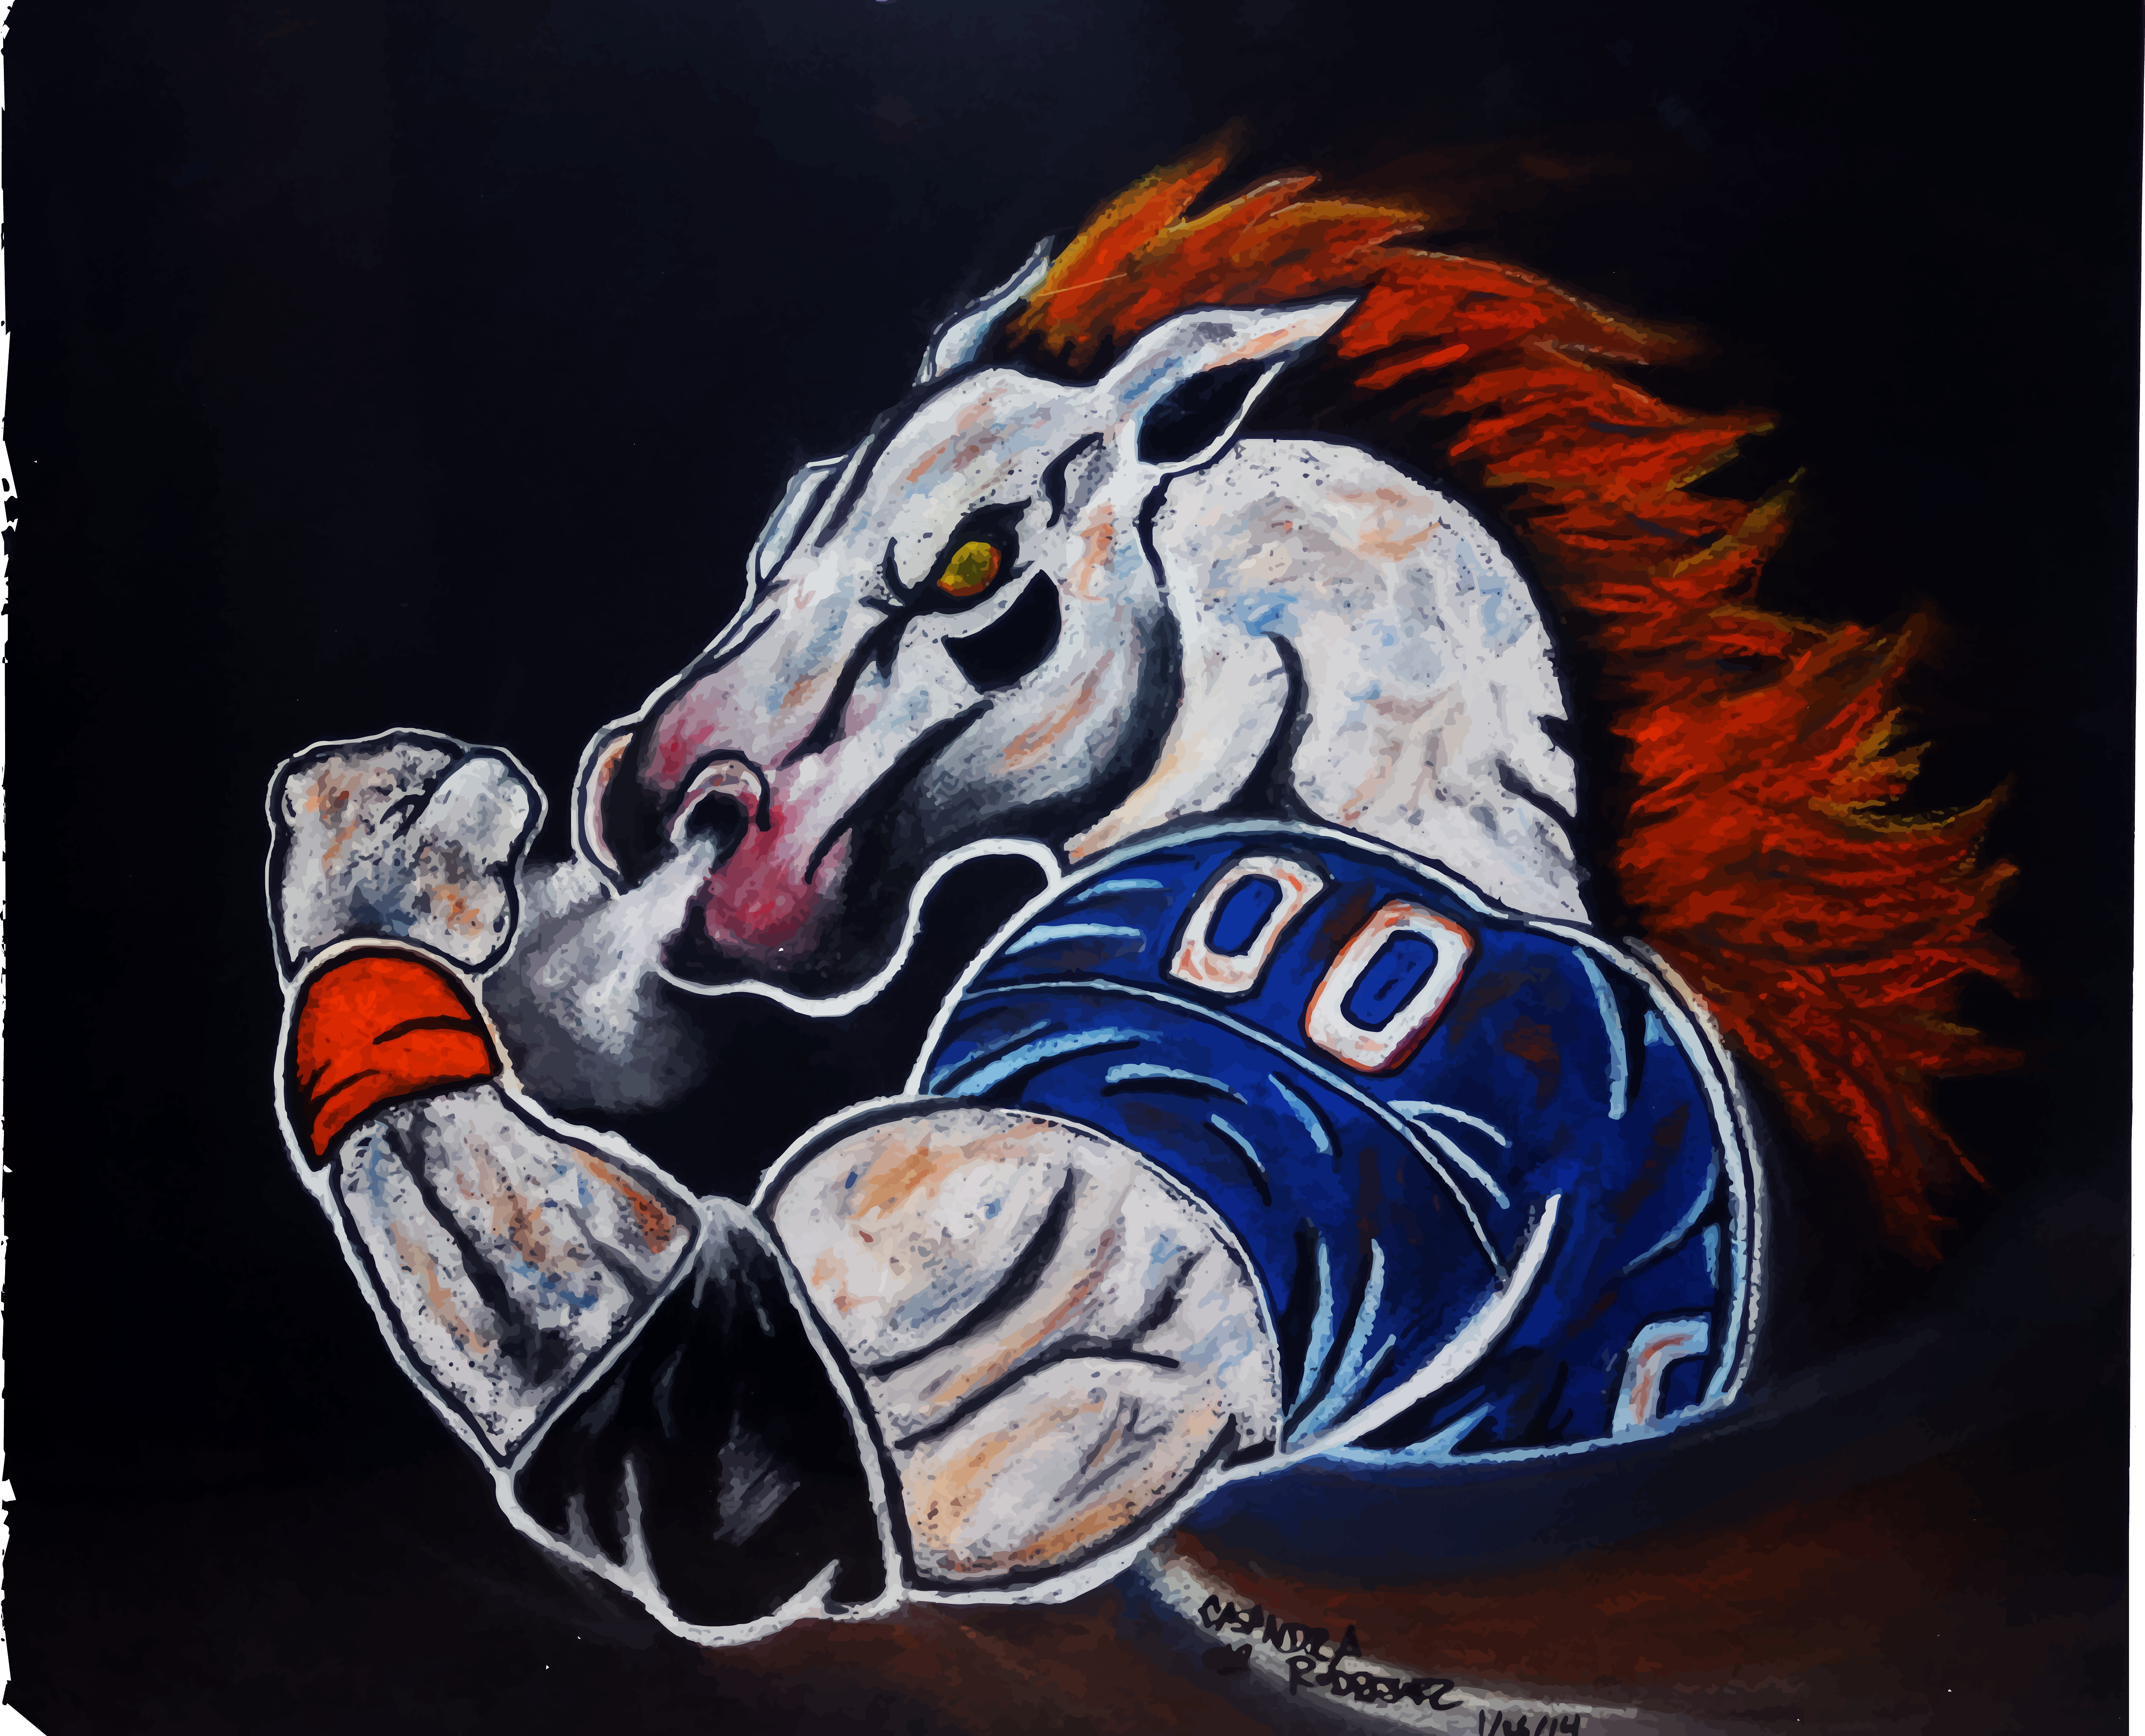 Denver broncos miles by lthanz on deviantart denver broncos miles by lthanz denver broncos miles by lthanz voltagebd Image collections